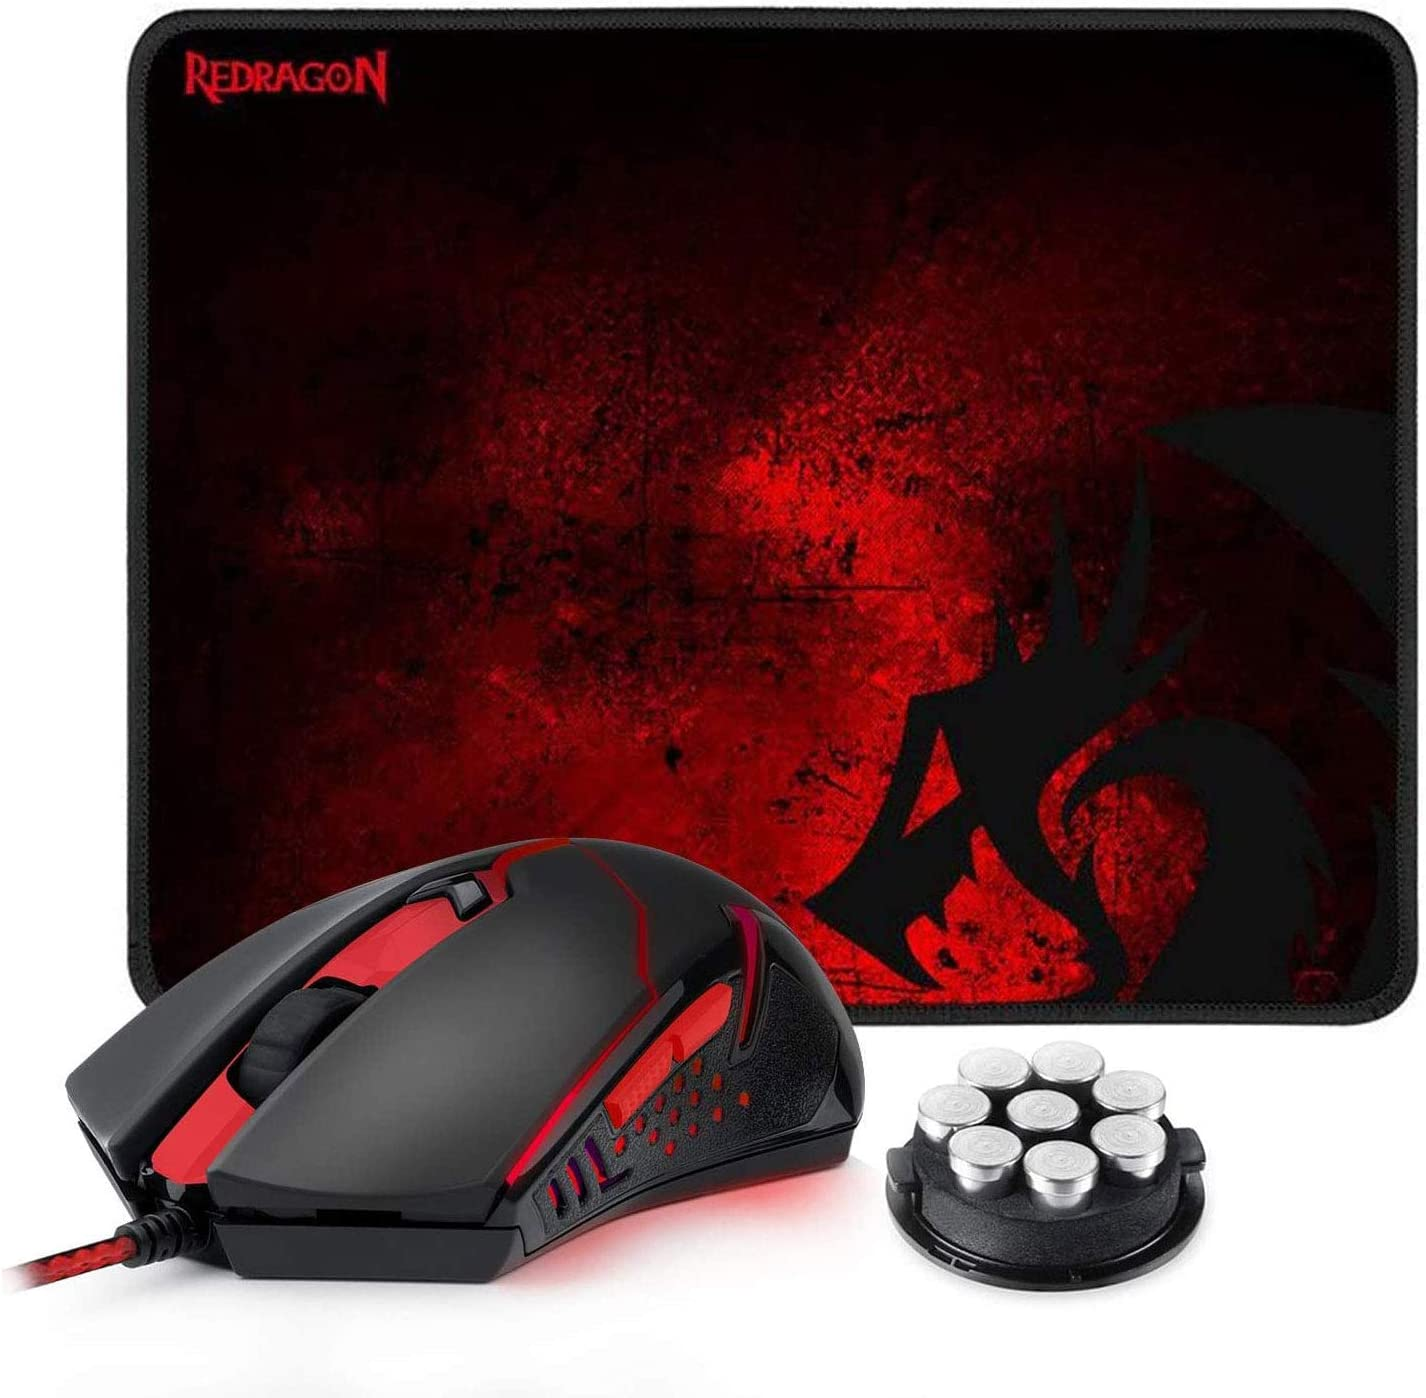 Redragon M601-BA Gaming Mouse and Mouse Pad Combo, Ergonomic Wired MMO 6 Button Mouse, 3200 DPI, Red LED Backlit & Large Mouse Pad for Windows PC Gamer (Black Wired Mouse & Mousepad Set)